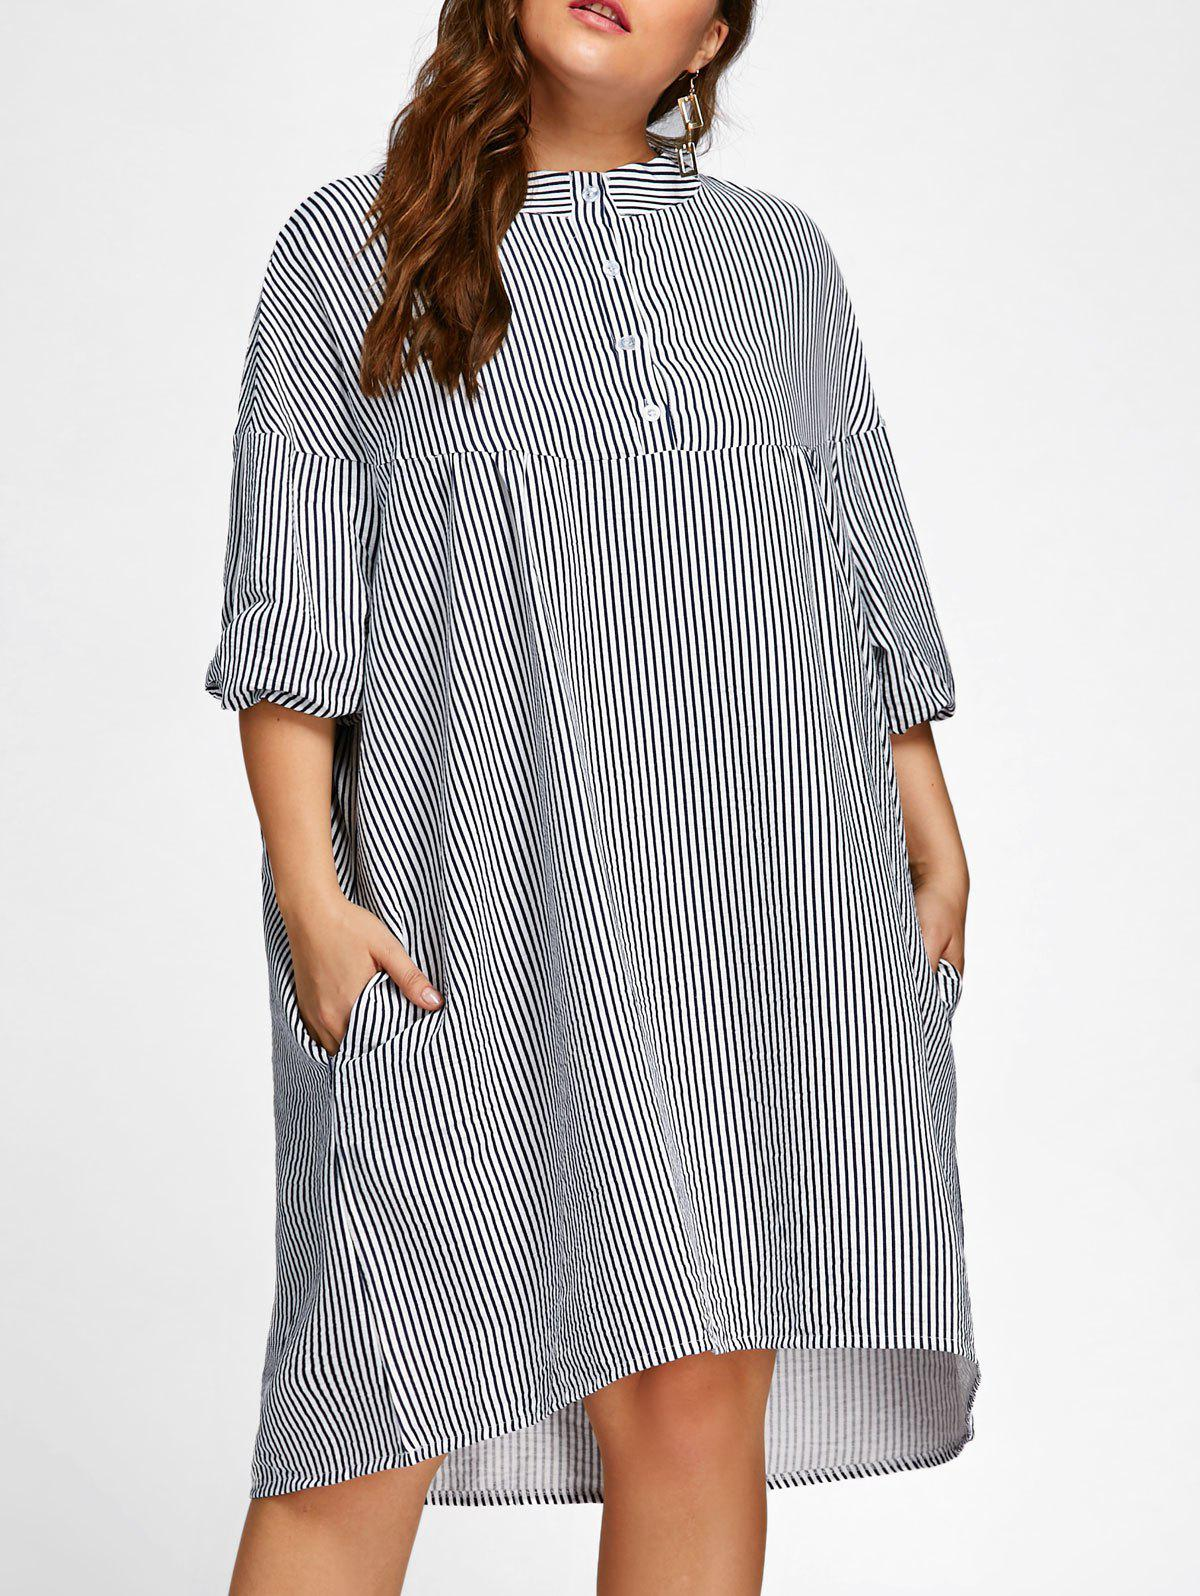 5148f013d08 65% OFF  Plus Size Pinstripe Tunic Smock Dress